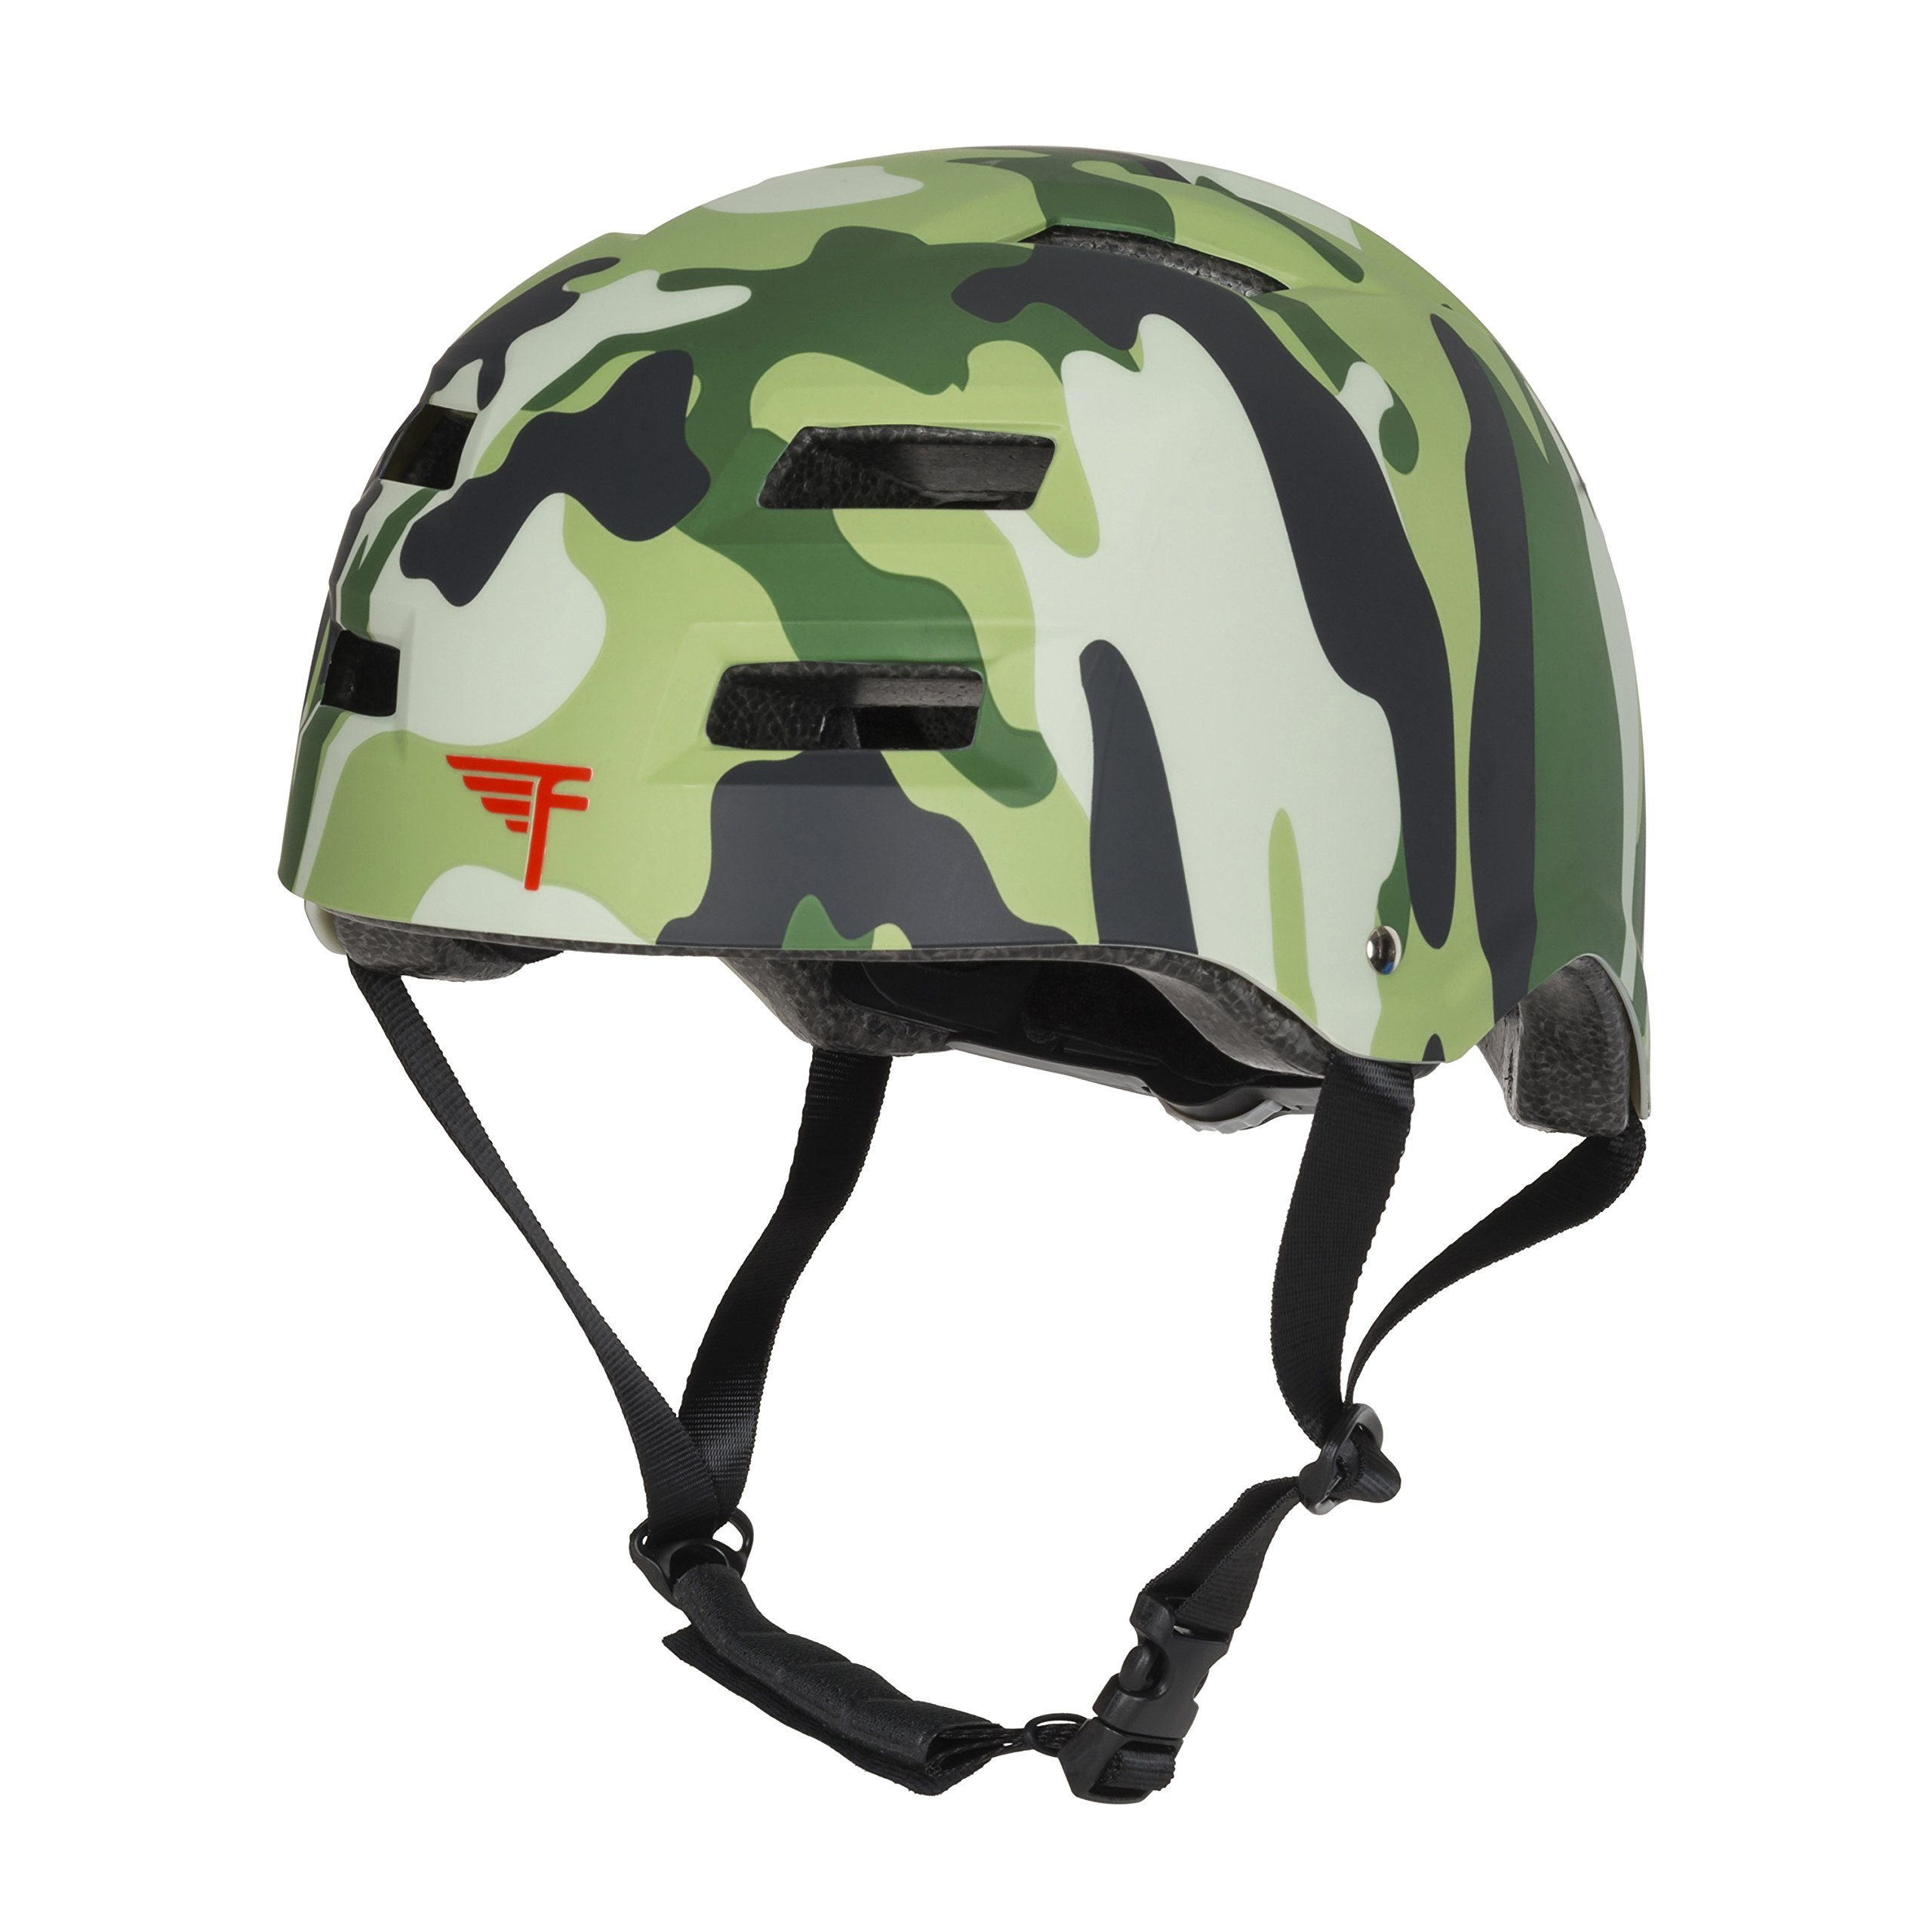 Flybar Dual Certified CPSC Multi Sport Kids & Adult Bike and Skateboard Adjustable Dial Helmet – Multiple Colors & Sizes (Camouflage, L/XL)